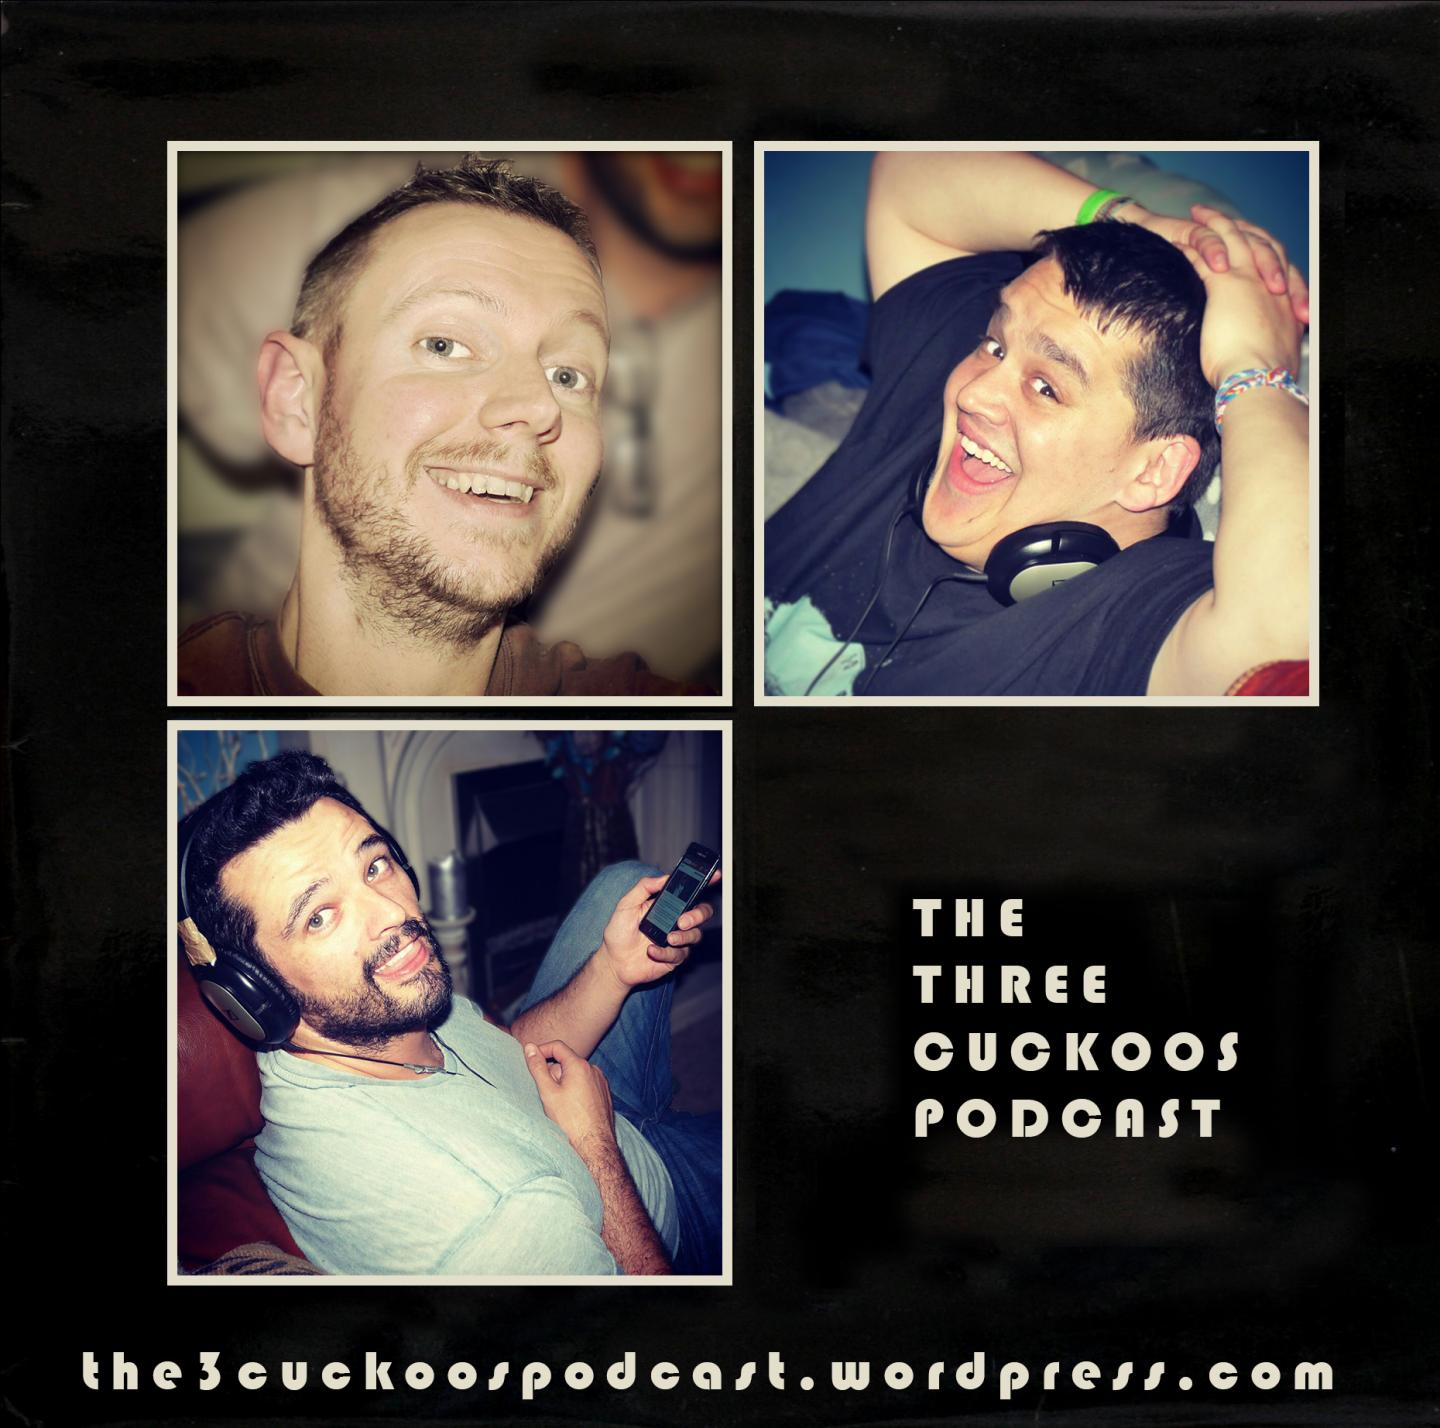 The 3 Cuckoos Podcast